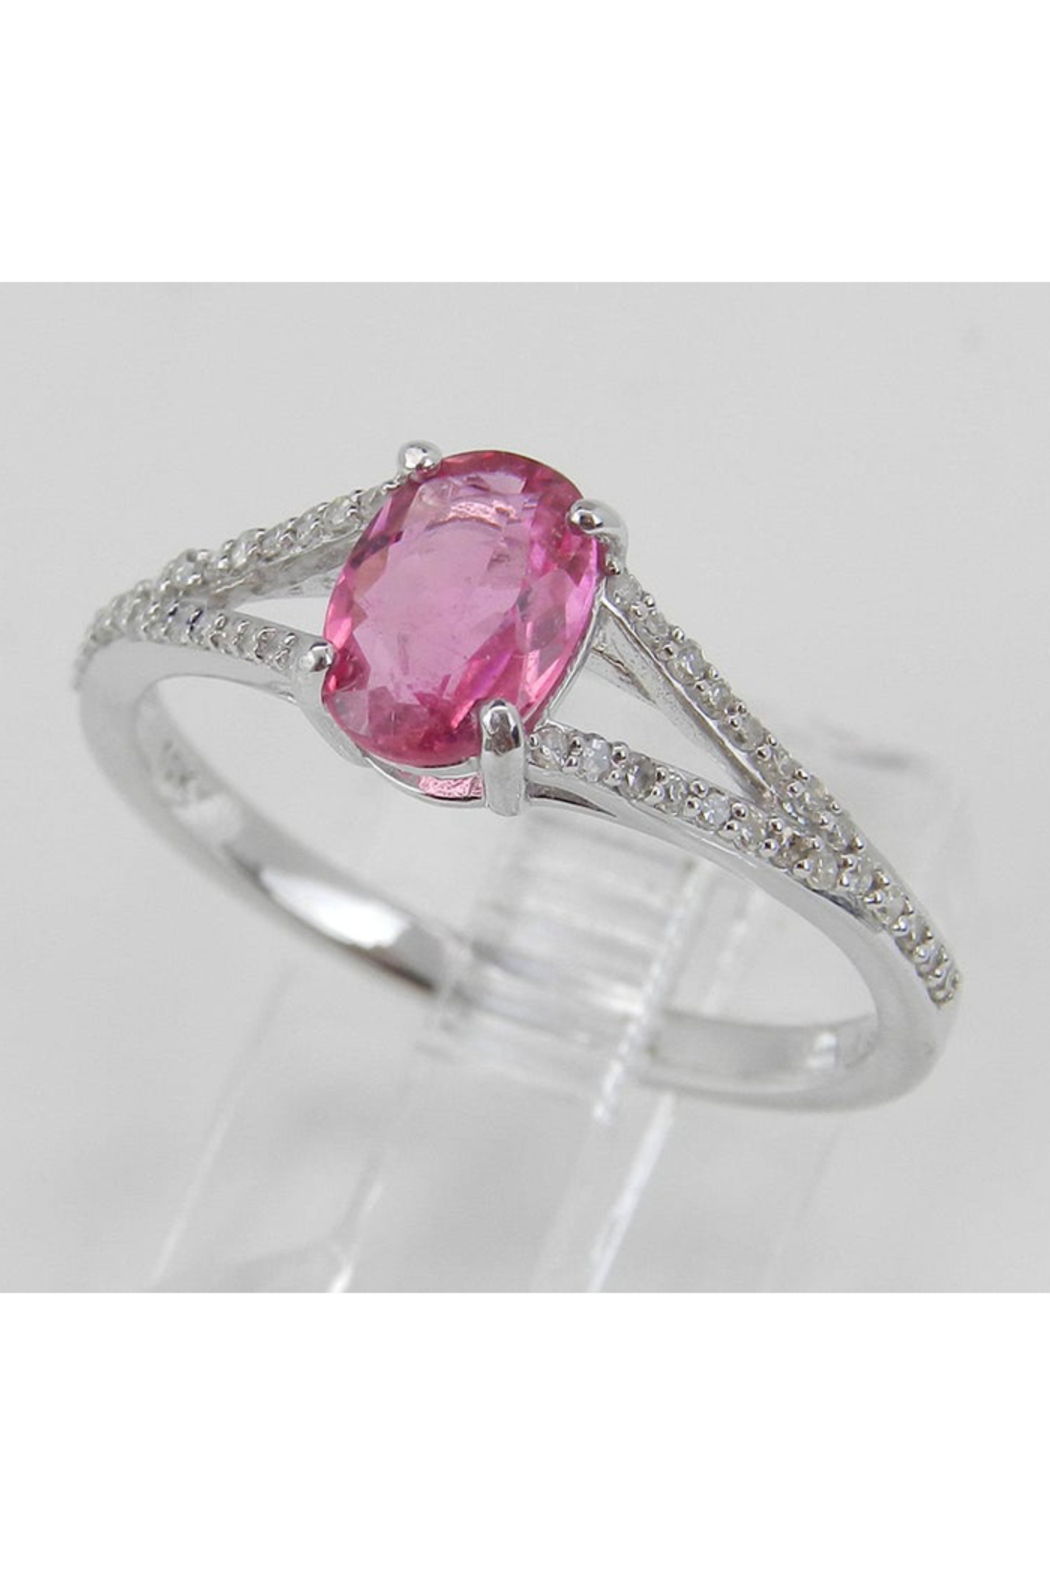 Margolin & Co Diamond and Pink Sapphire Ring, Pink Sapphire Engagement Ring, White Gold Promise Ring, Split Shank Engagement Ring, Size 7 FREE Sizing - Side Cropped Image